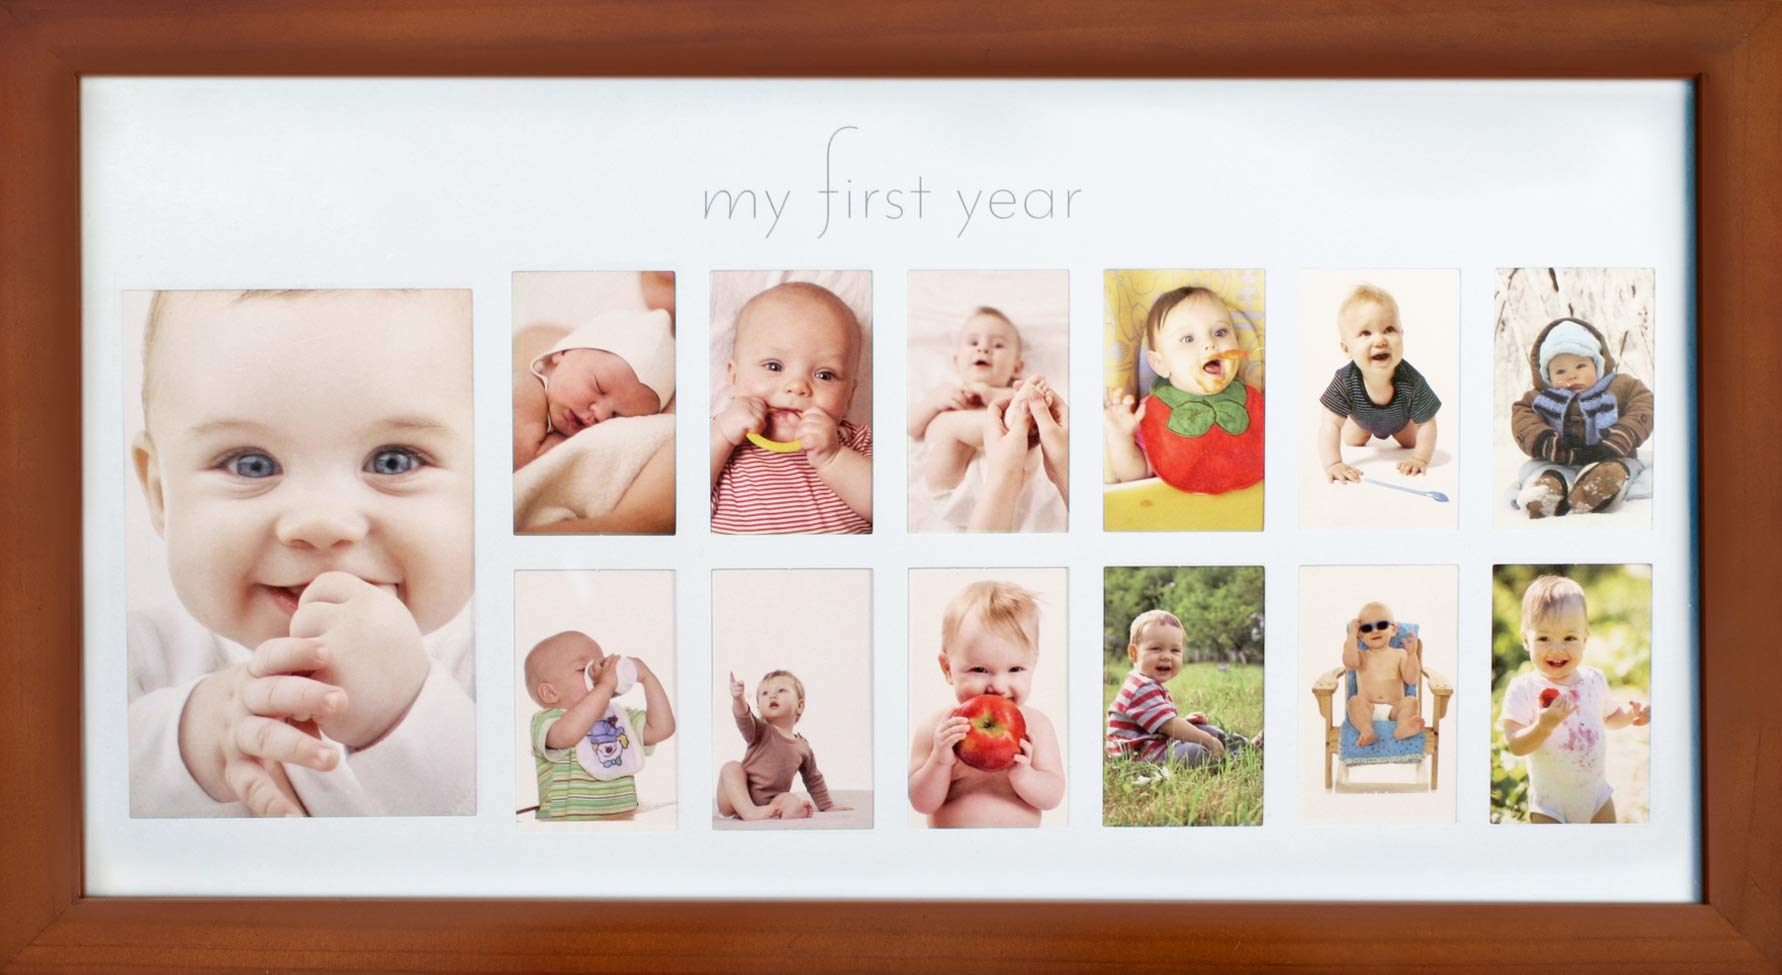 Baby's First Year Frame in Elegant Brown Natural Wood - My First Year Baby Picture Frame for Photo Memories by Green Pollywog